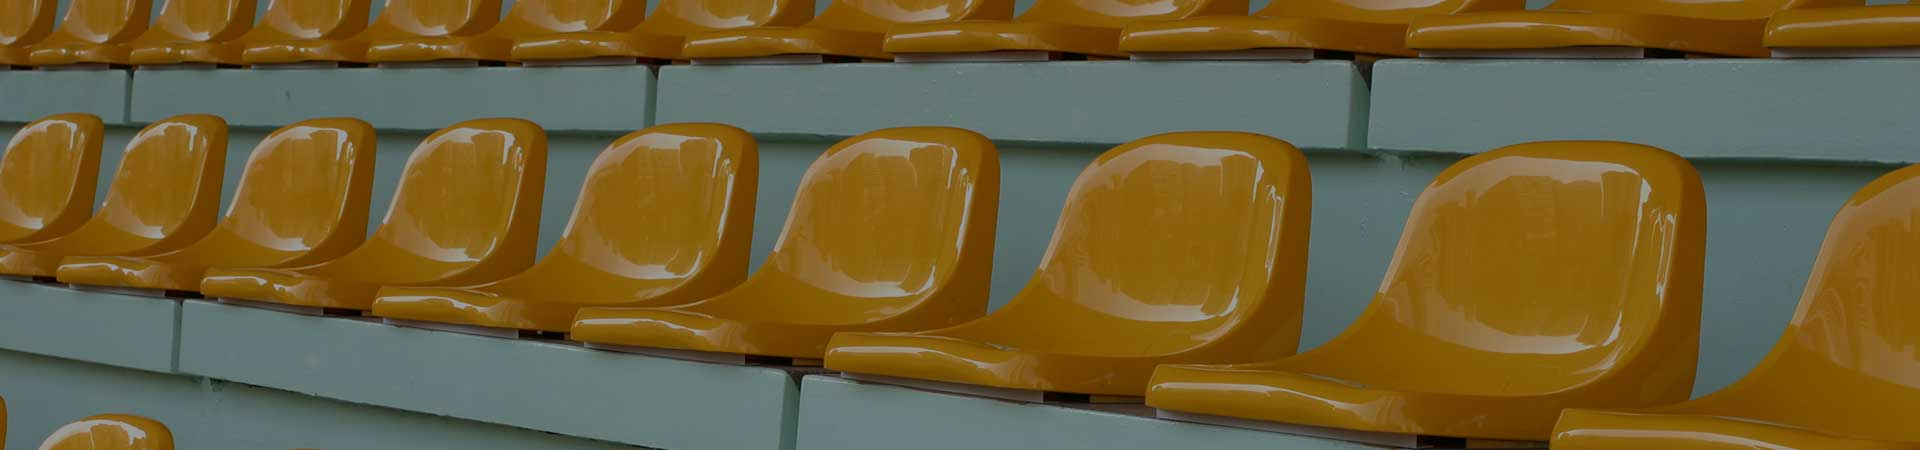 Yellow chairs in a stadium